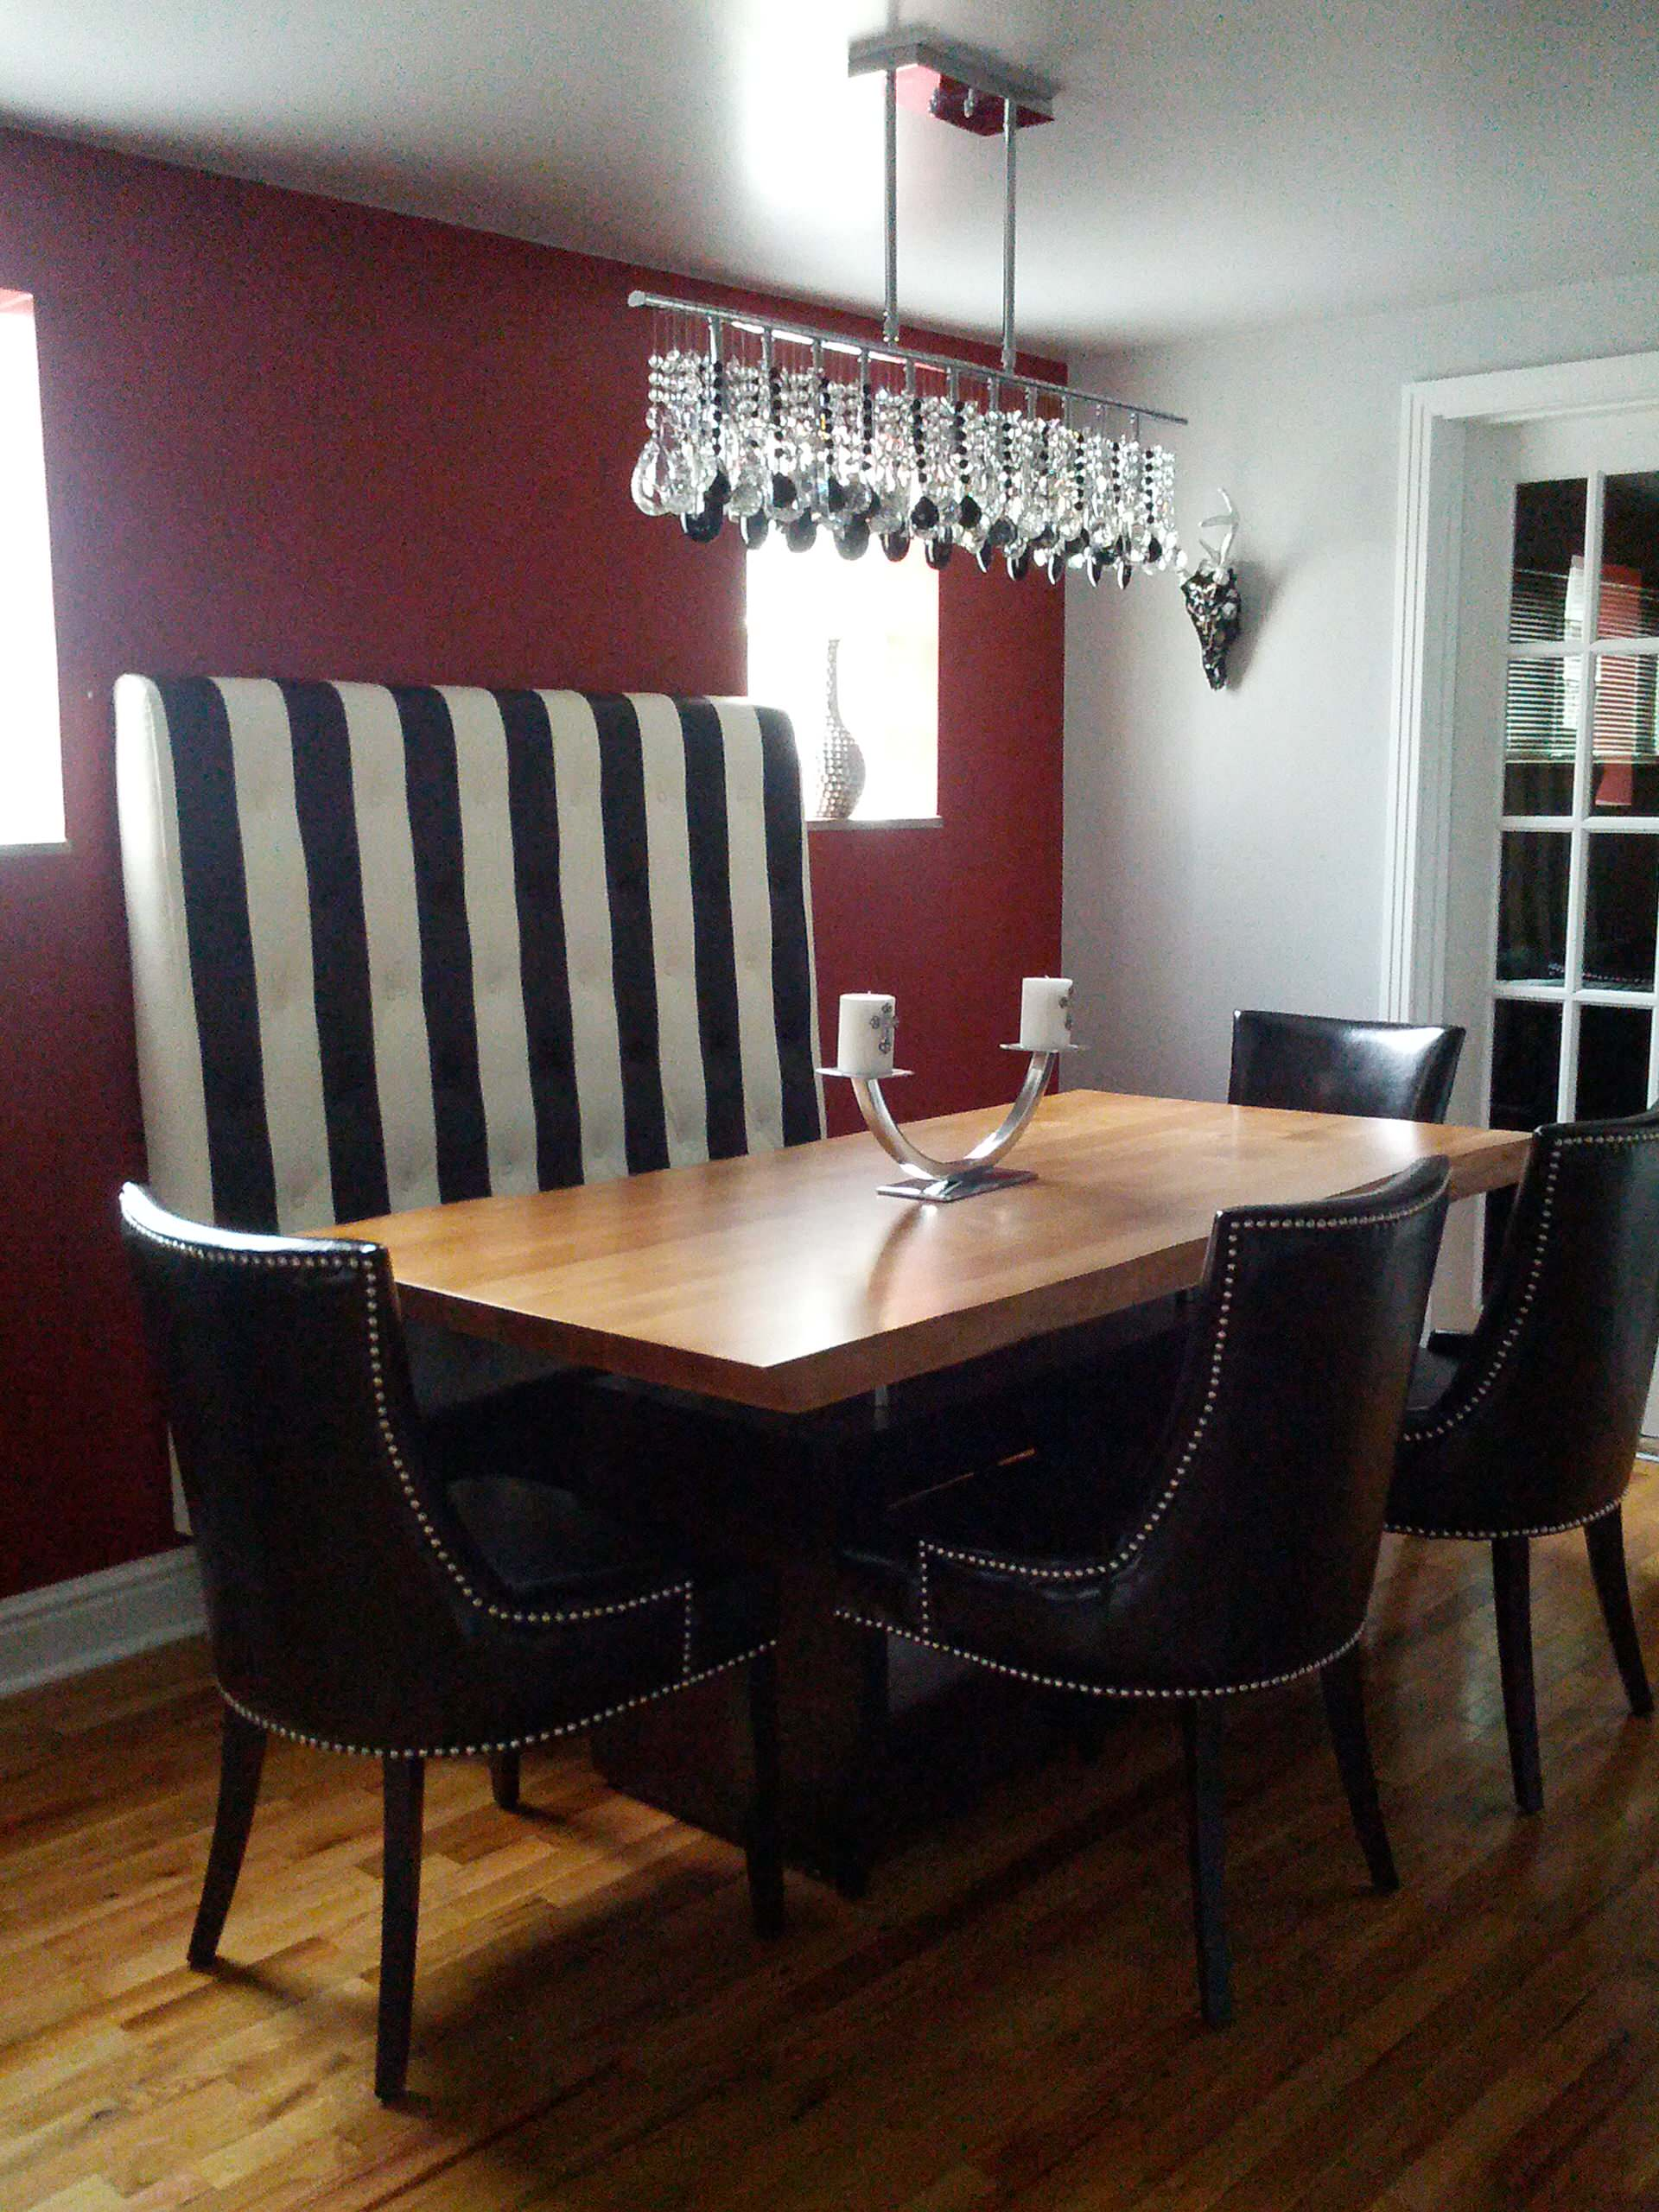 A Great Small Dining Space by Eccentricity Designs